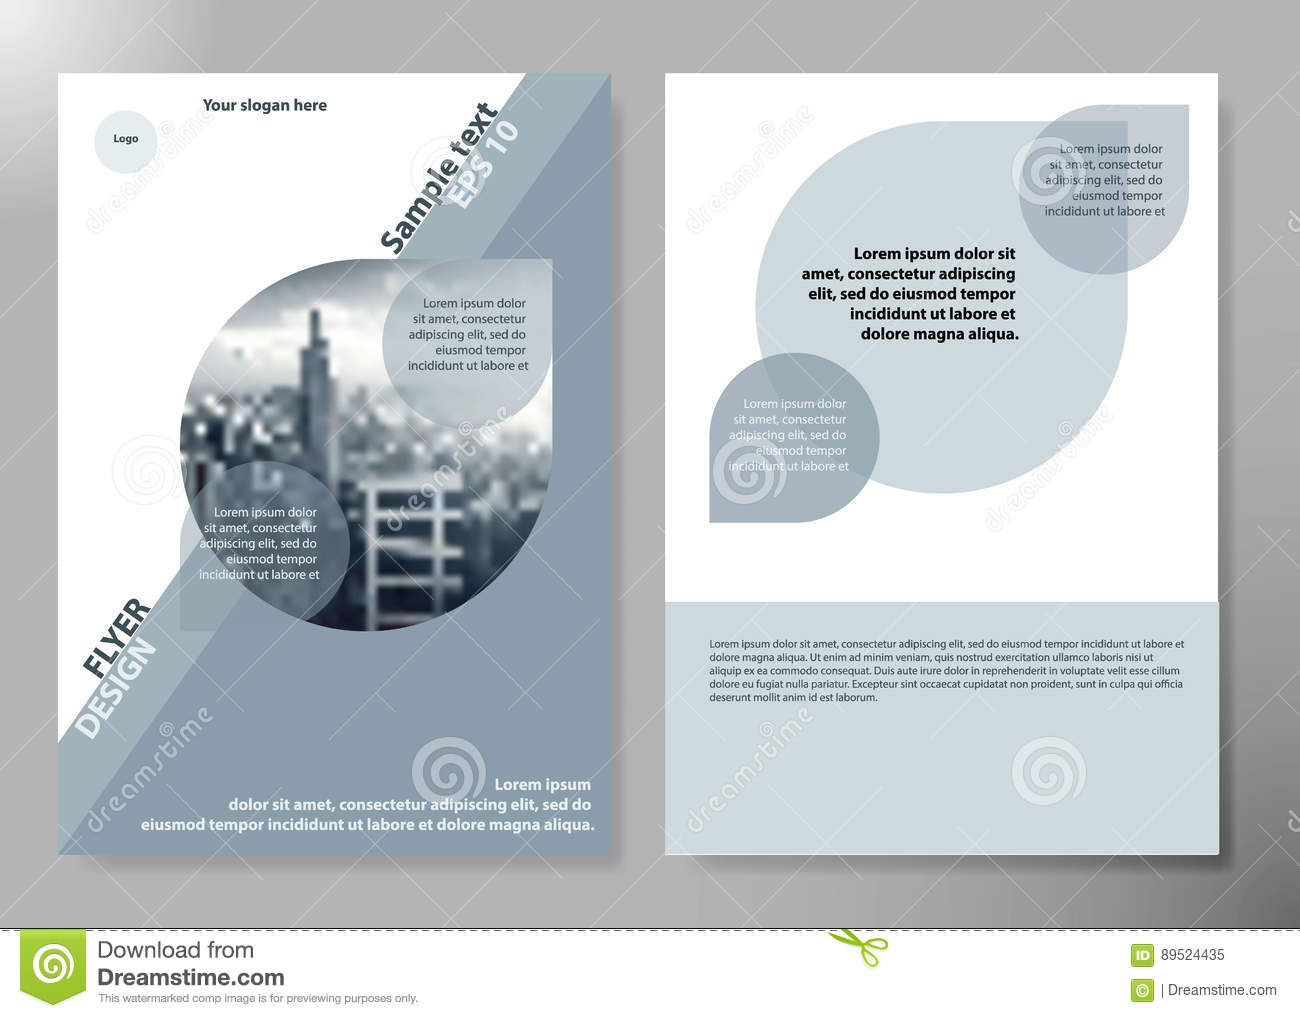 Minimal flyers report business magazine poster layout portfolio minimal flyers report business magazine poster layout portfolio templateochure design template vectorsquare cheaphphosting Image collections